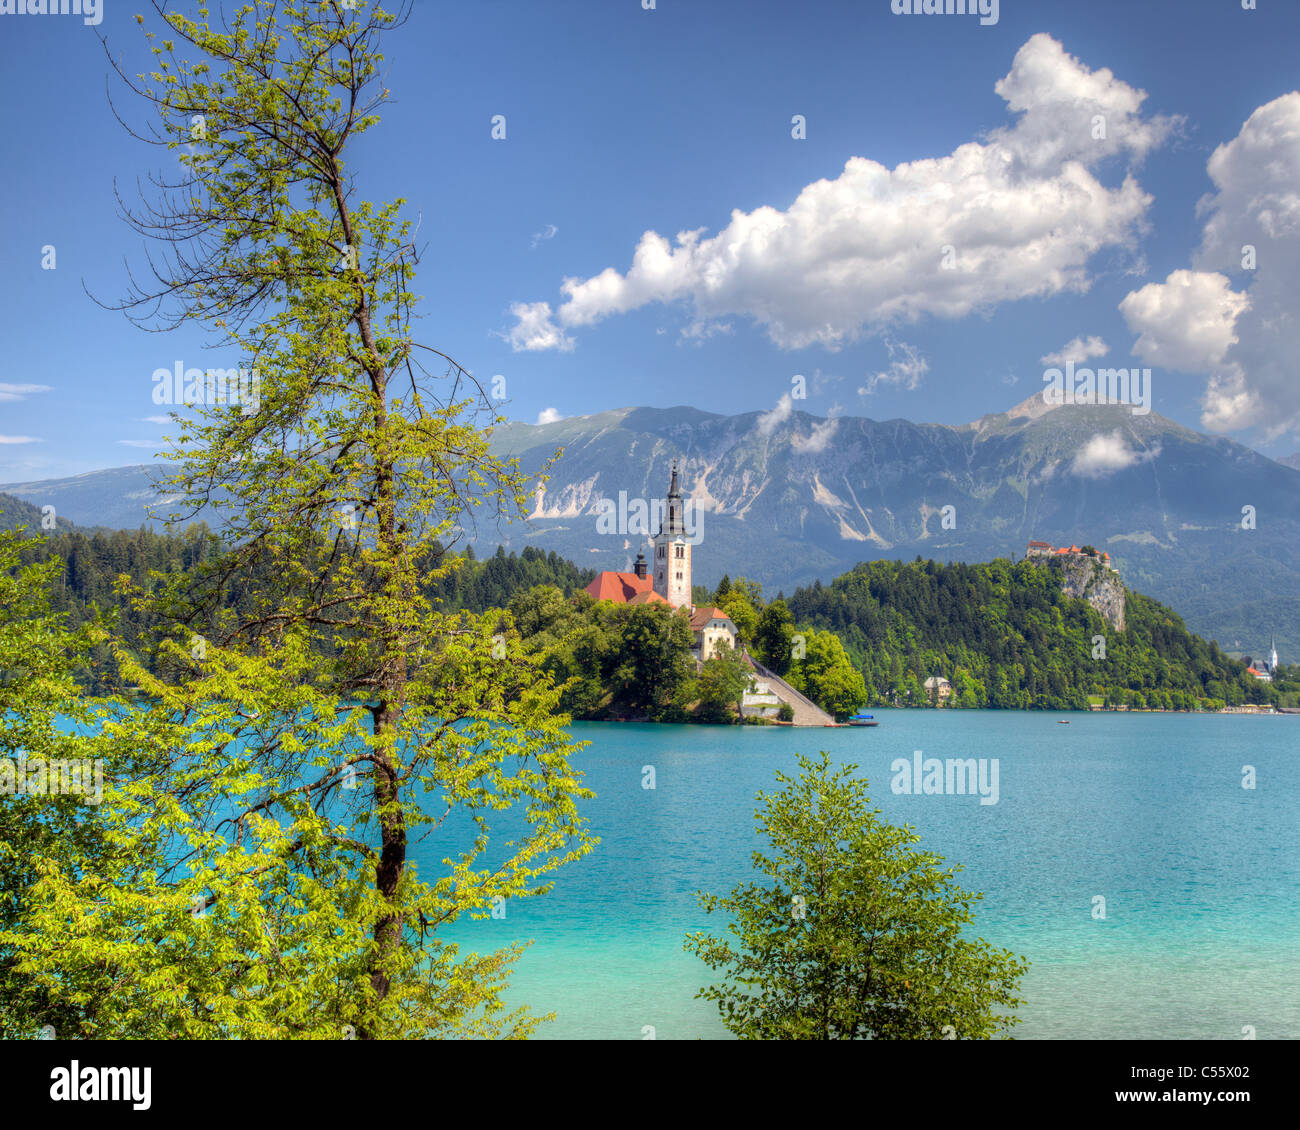 SLO - GORENJSKA REGION: Lake Bled and Island Church of the Assumption - Stock Image